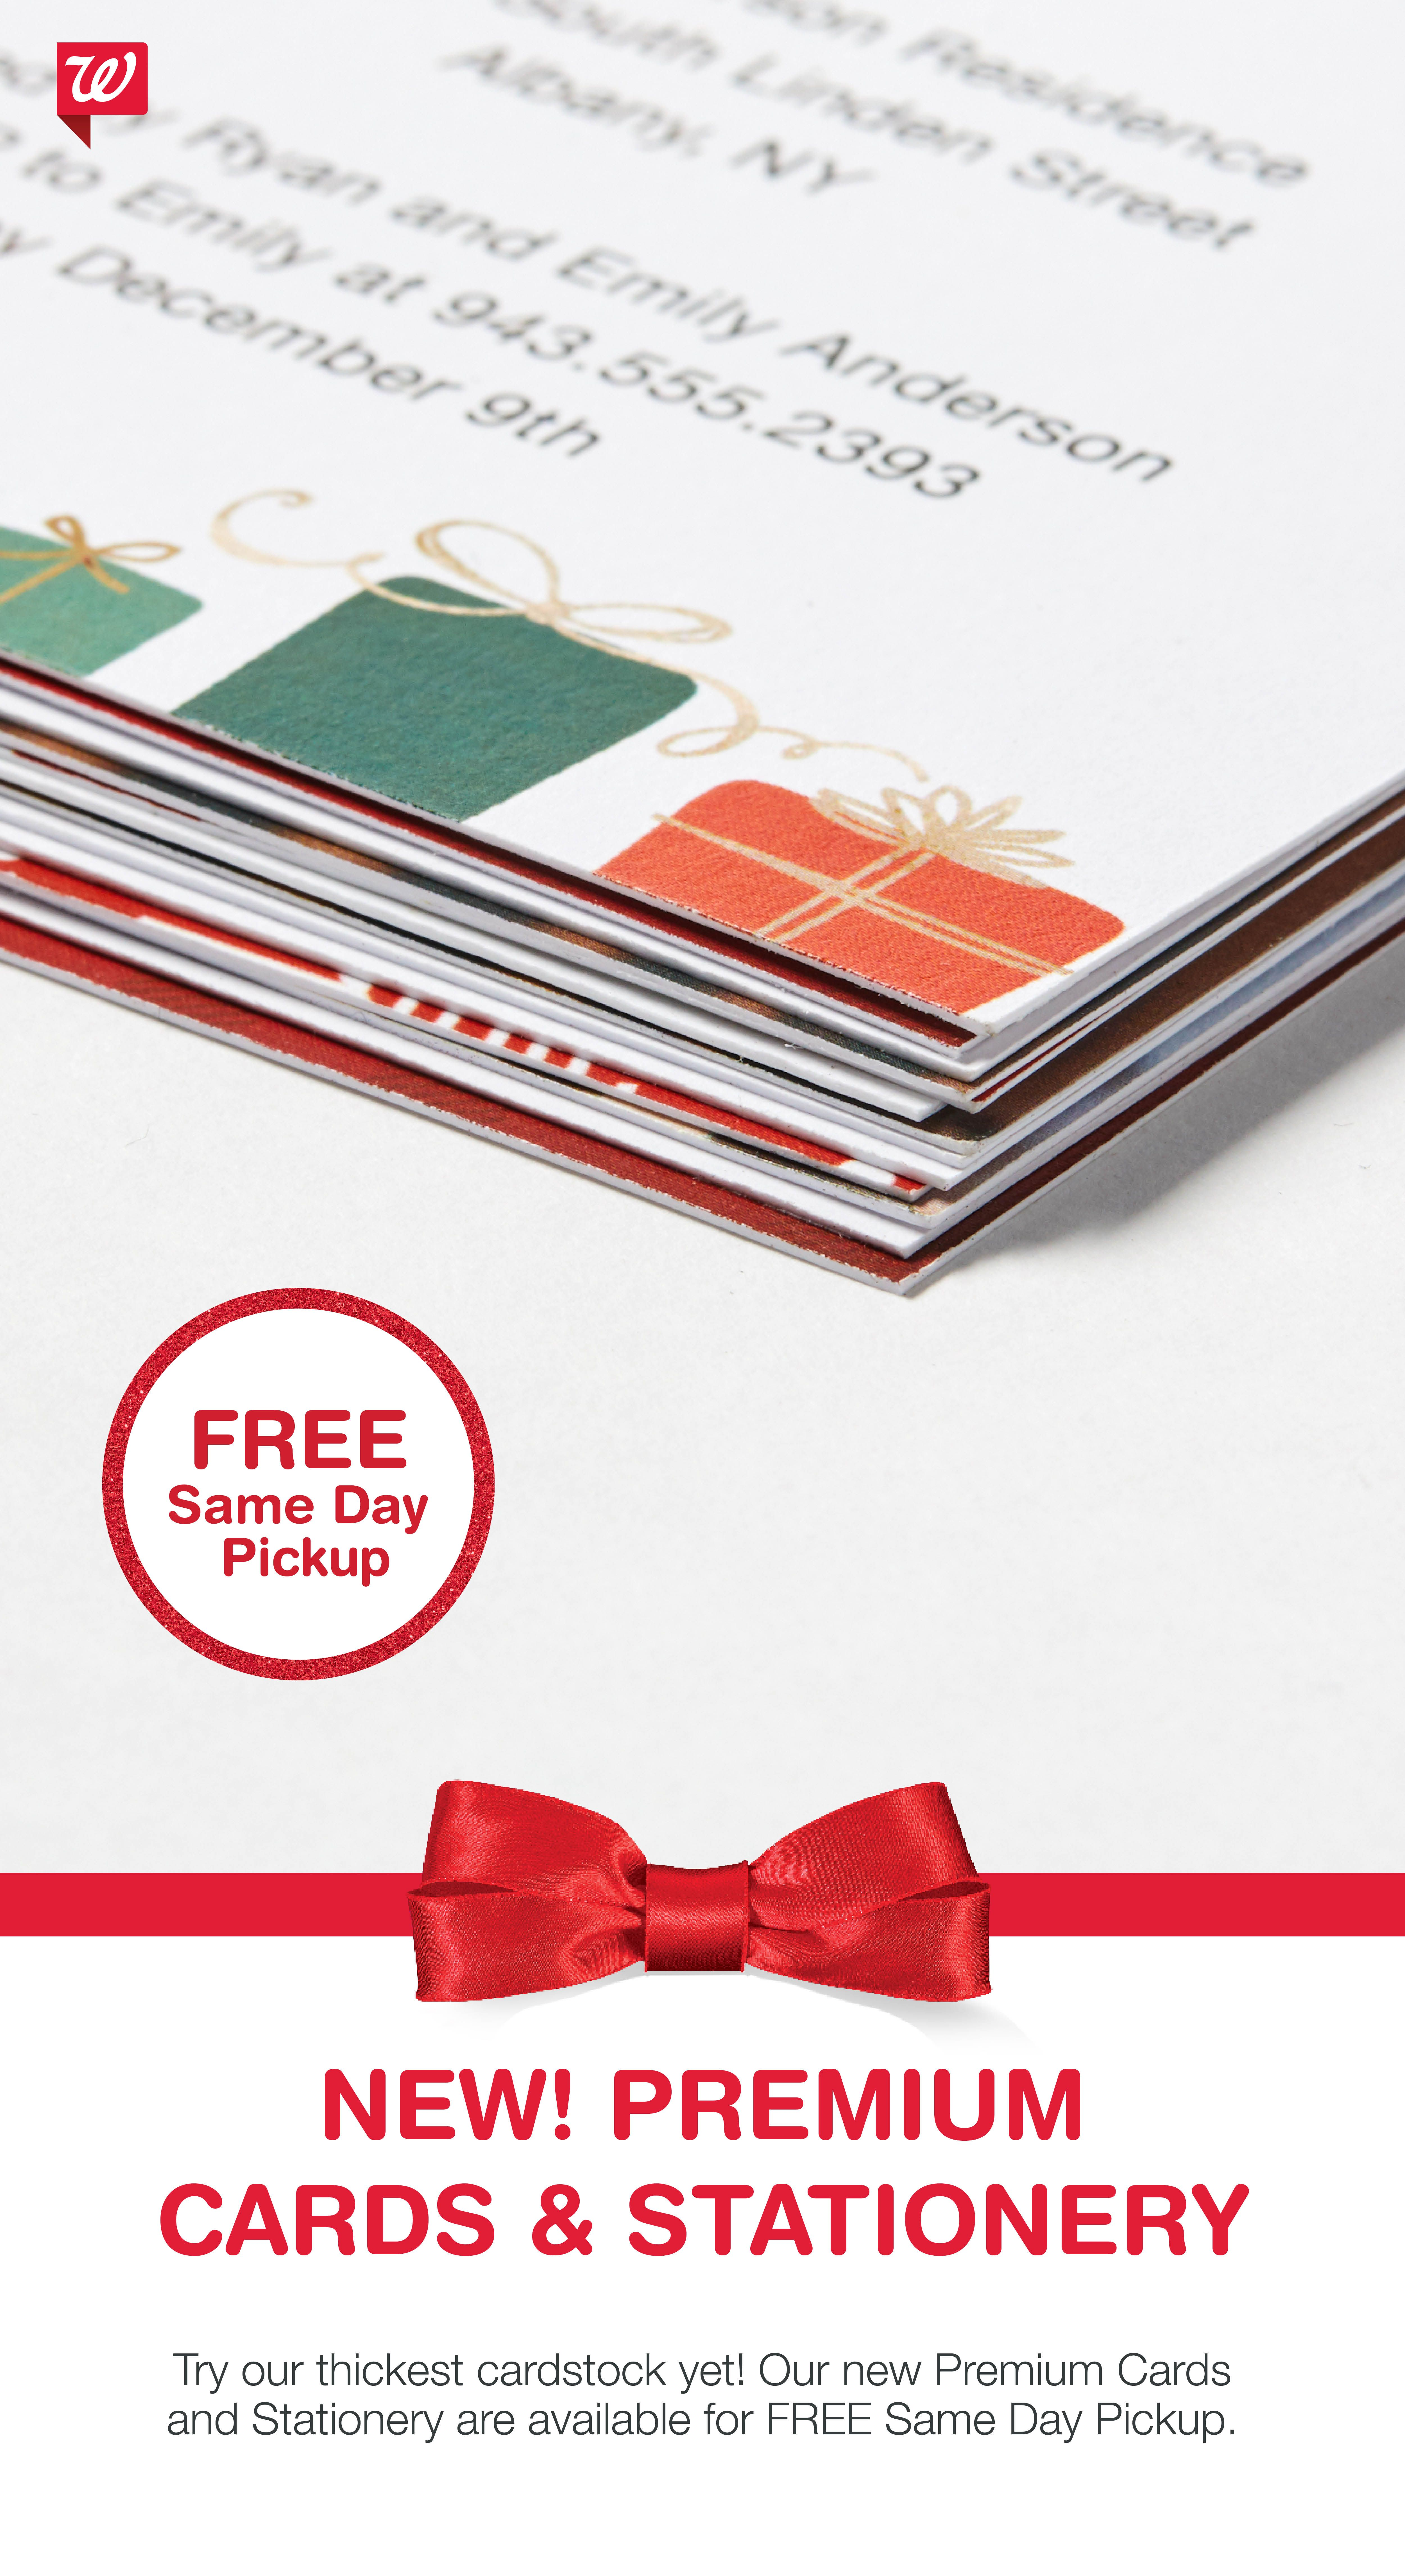 Send seasons greetings on our best cardstock yet our new premium send seasons greetings on our best cardstock yet our new premium cards and stationery offers kristyandbryce Image collections